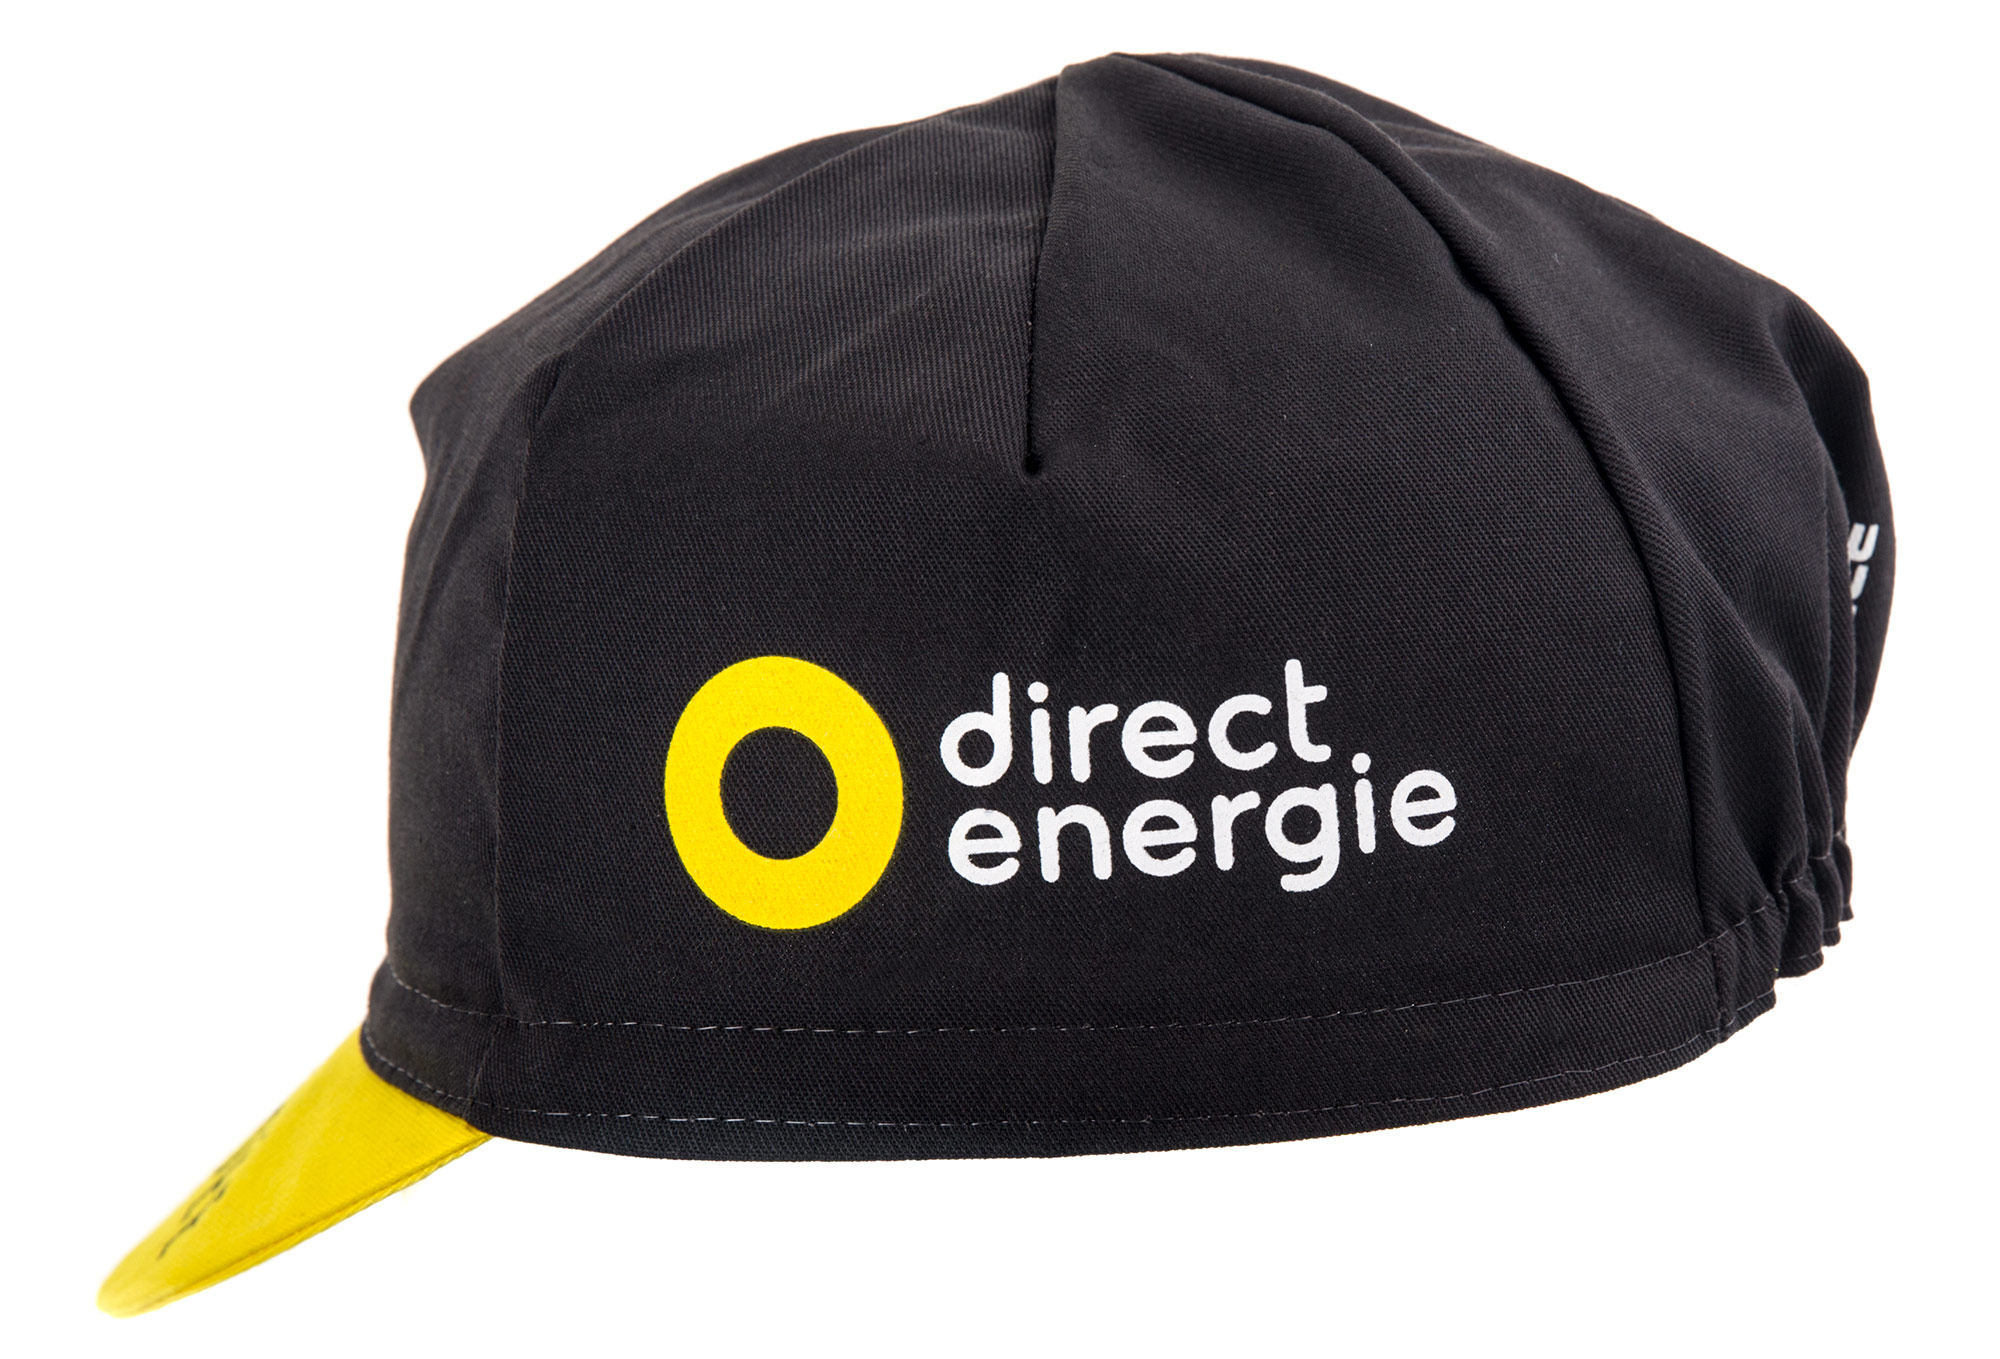 Cycling cap ale team direct energie 2017 black yellow - Direct energie simulation ...